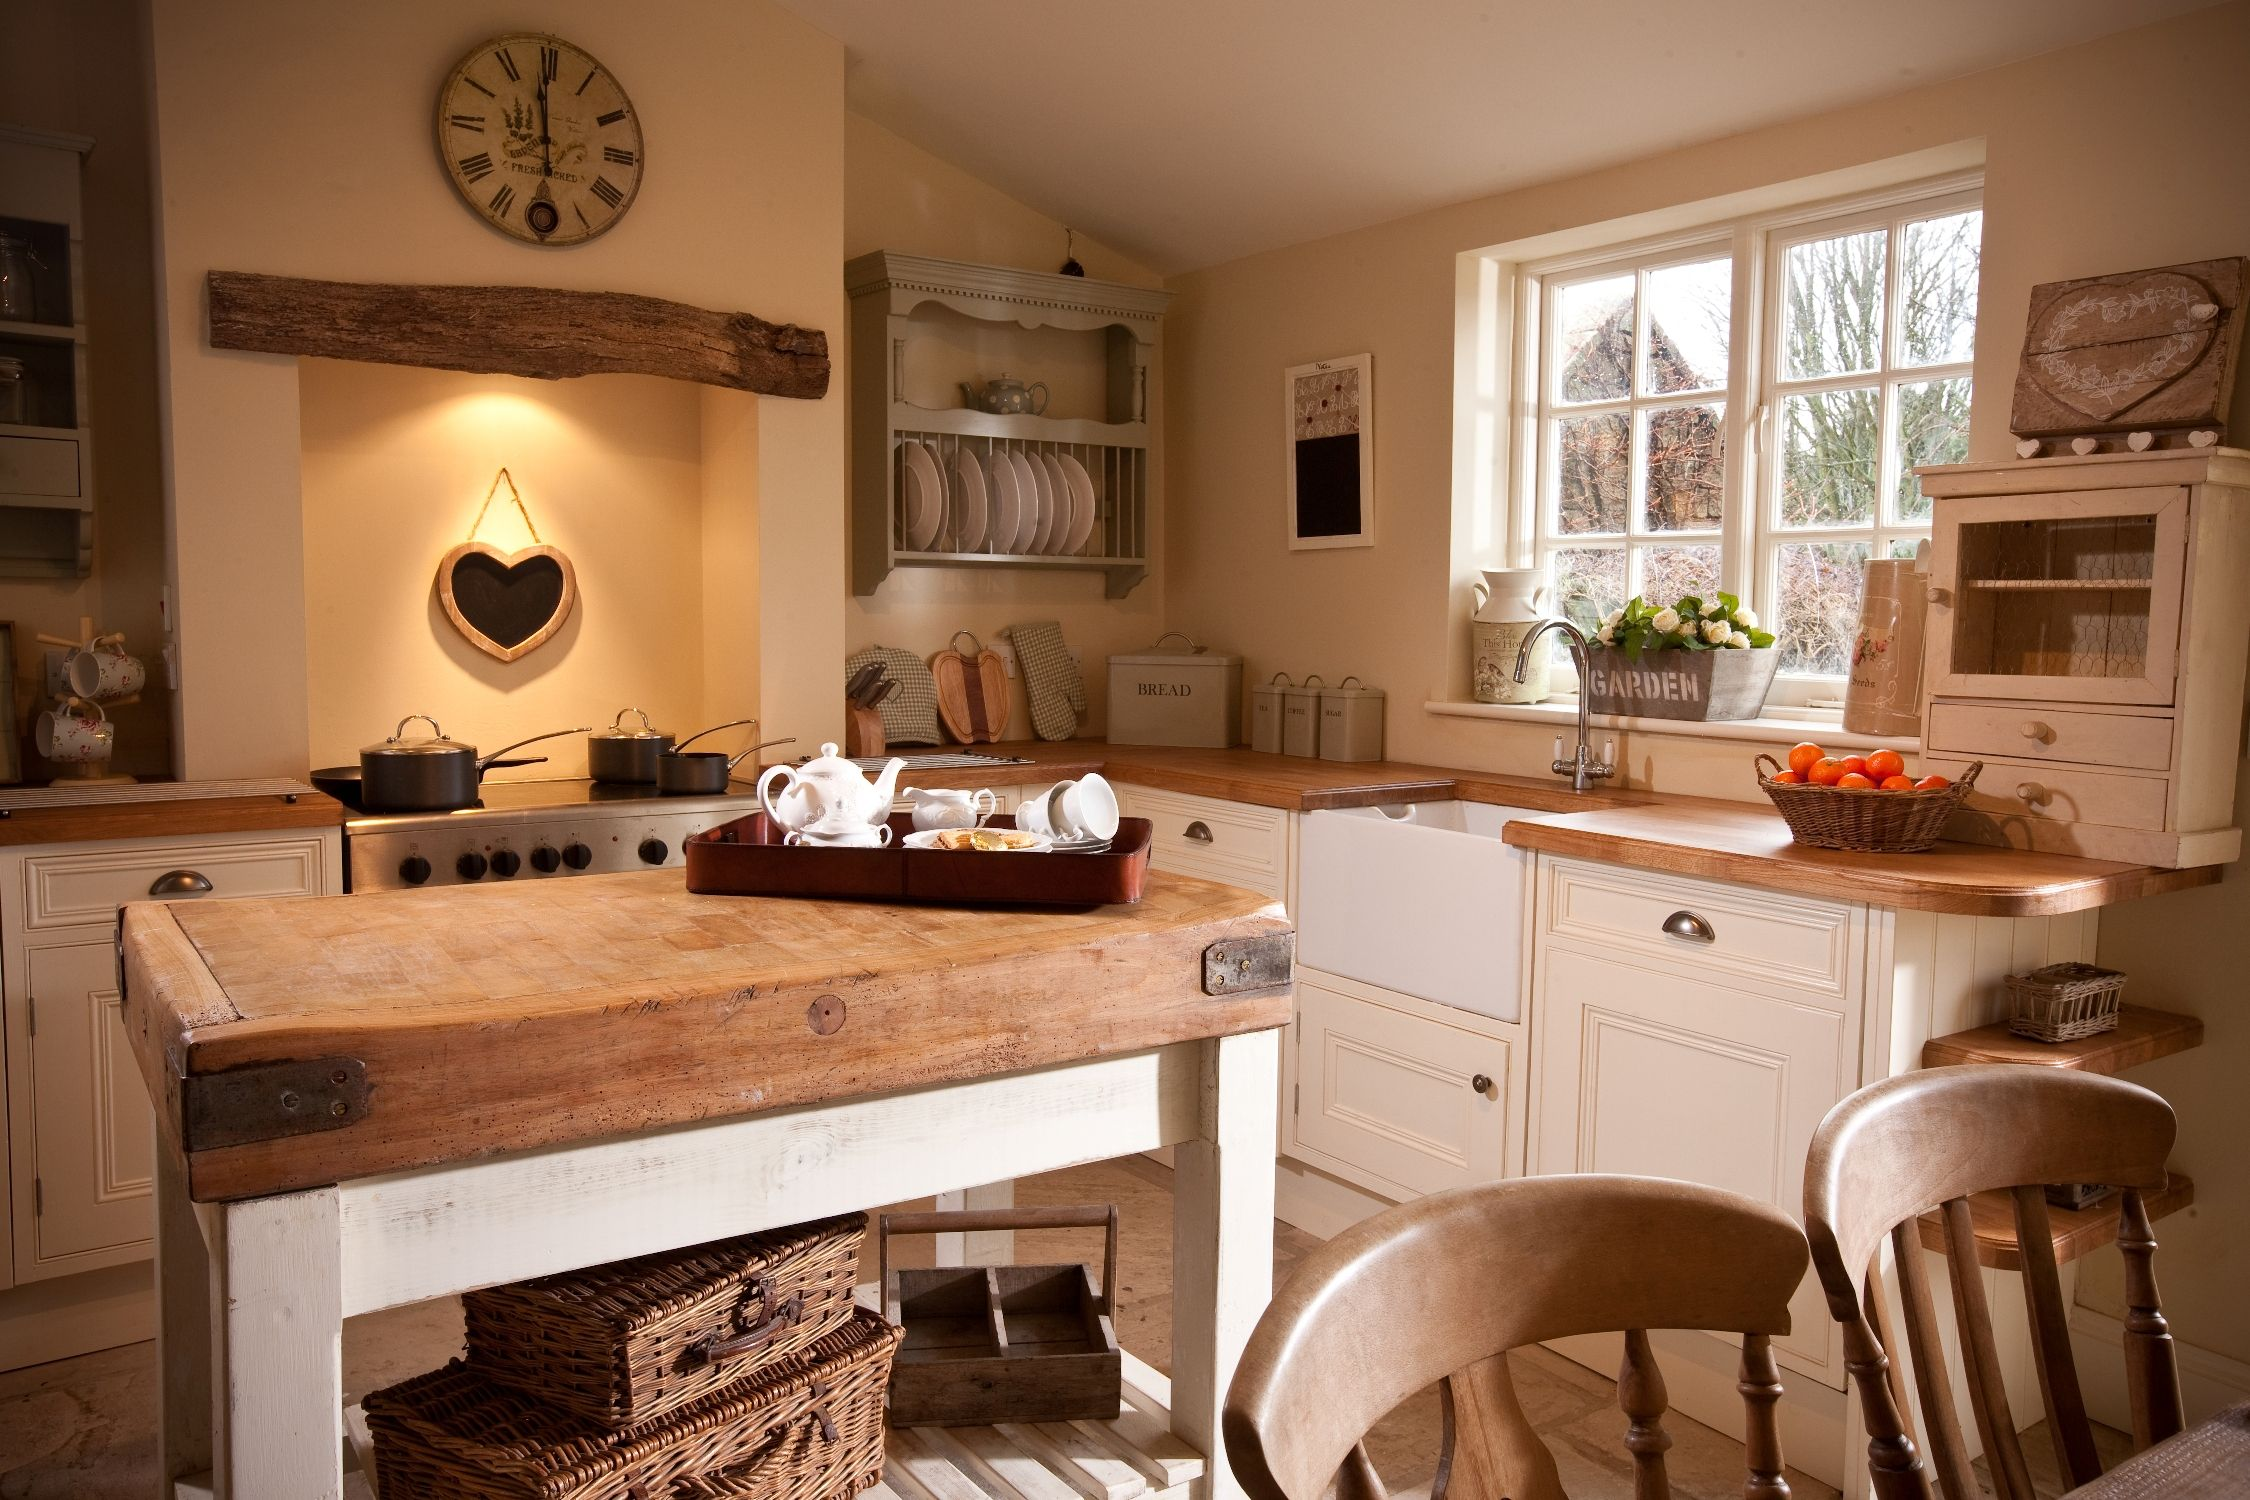 55 Cozy Country Kitchen Ideas Cute766